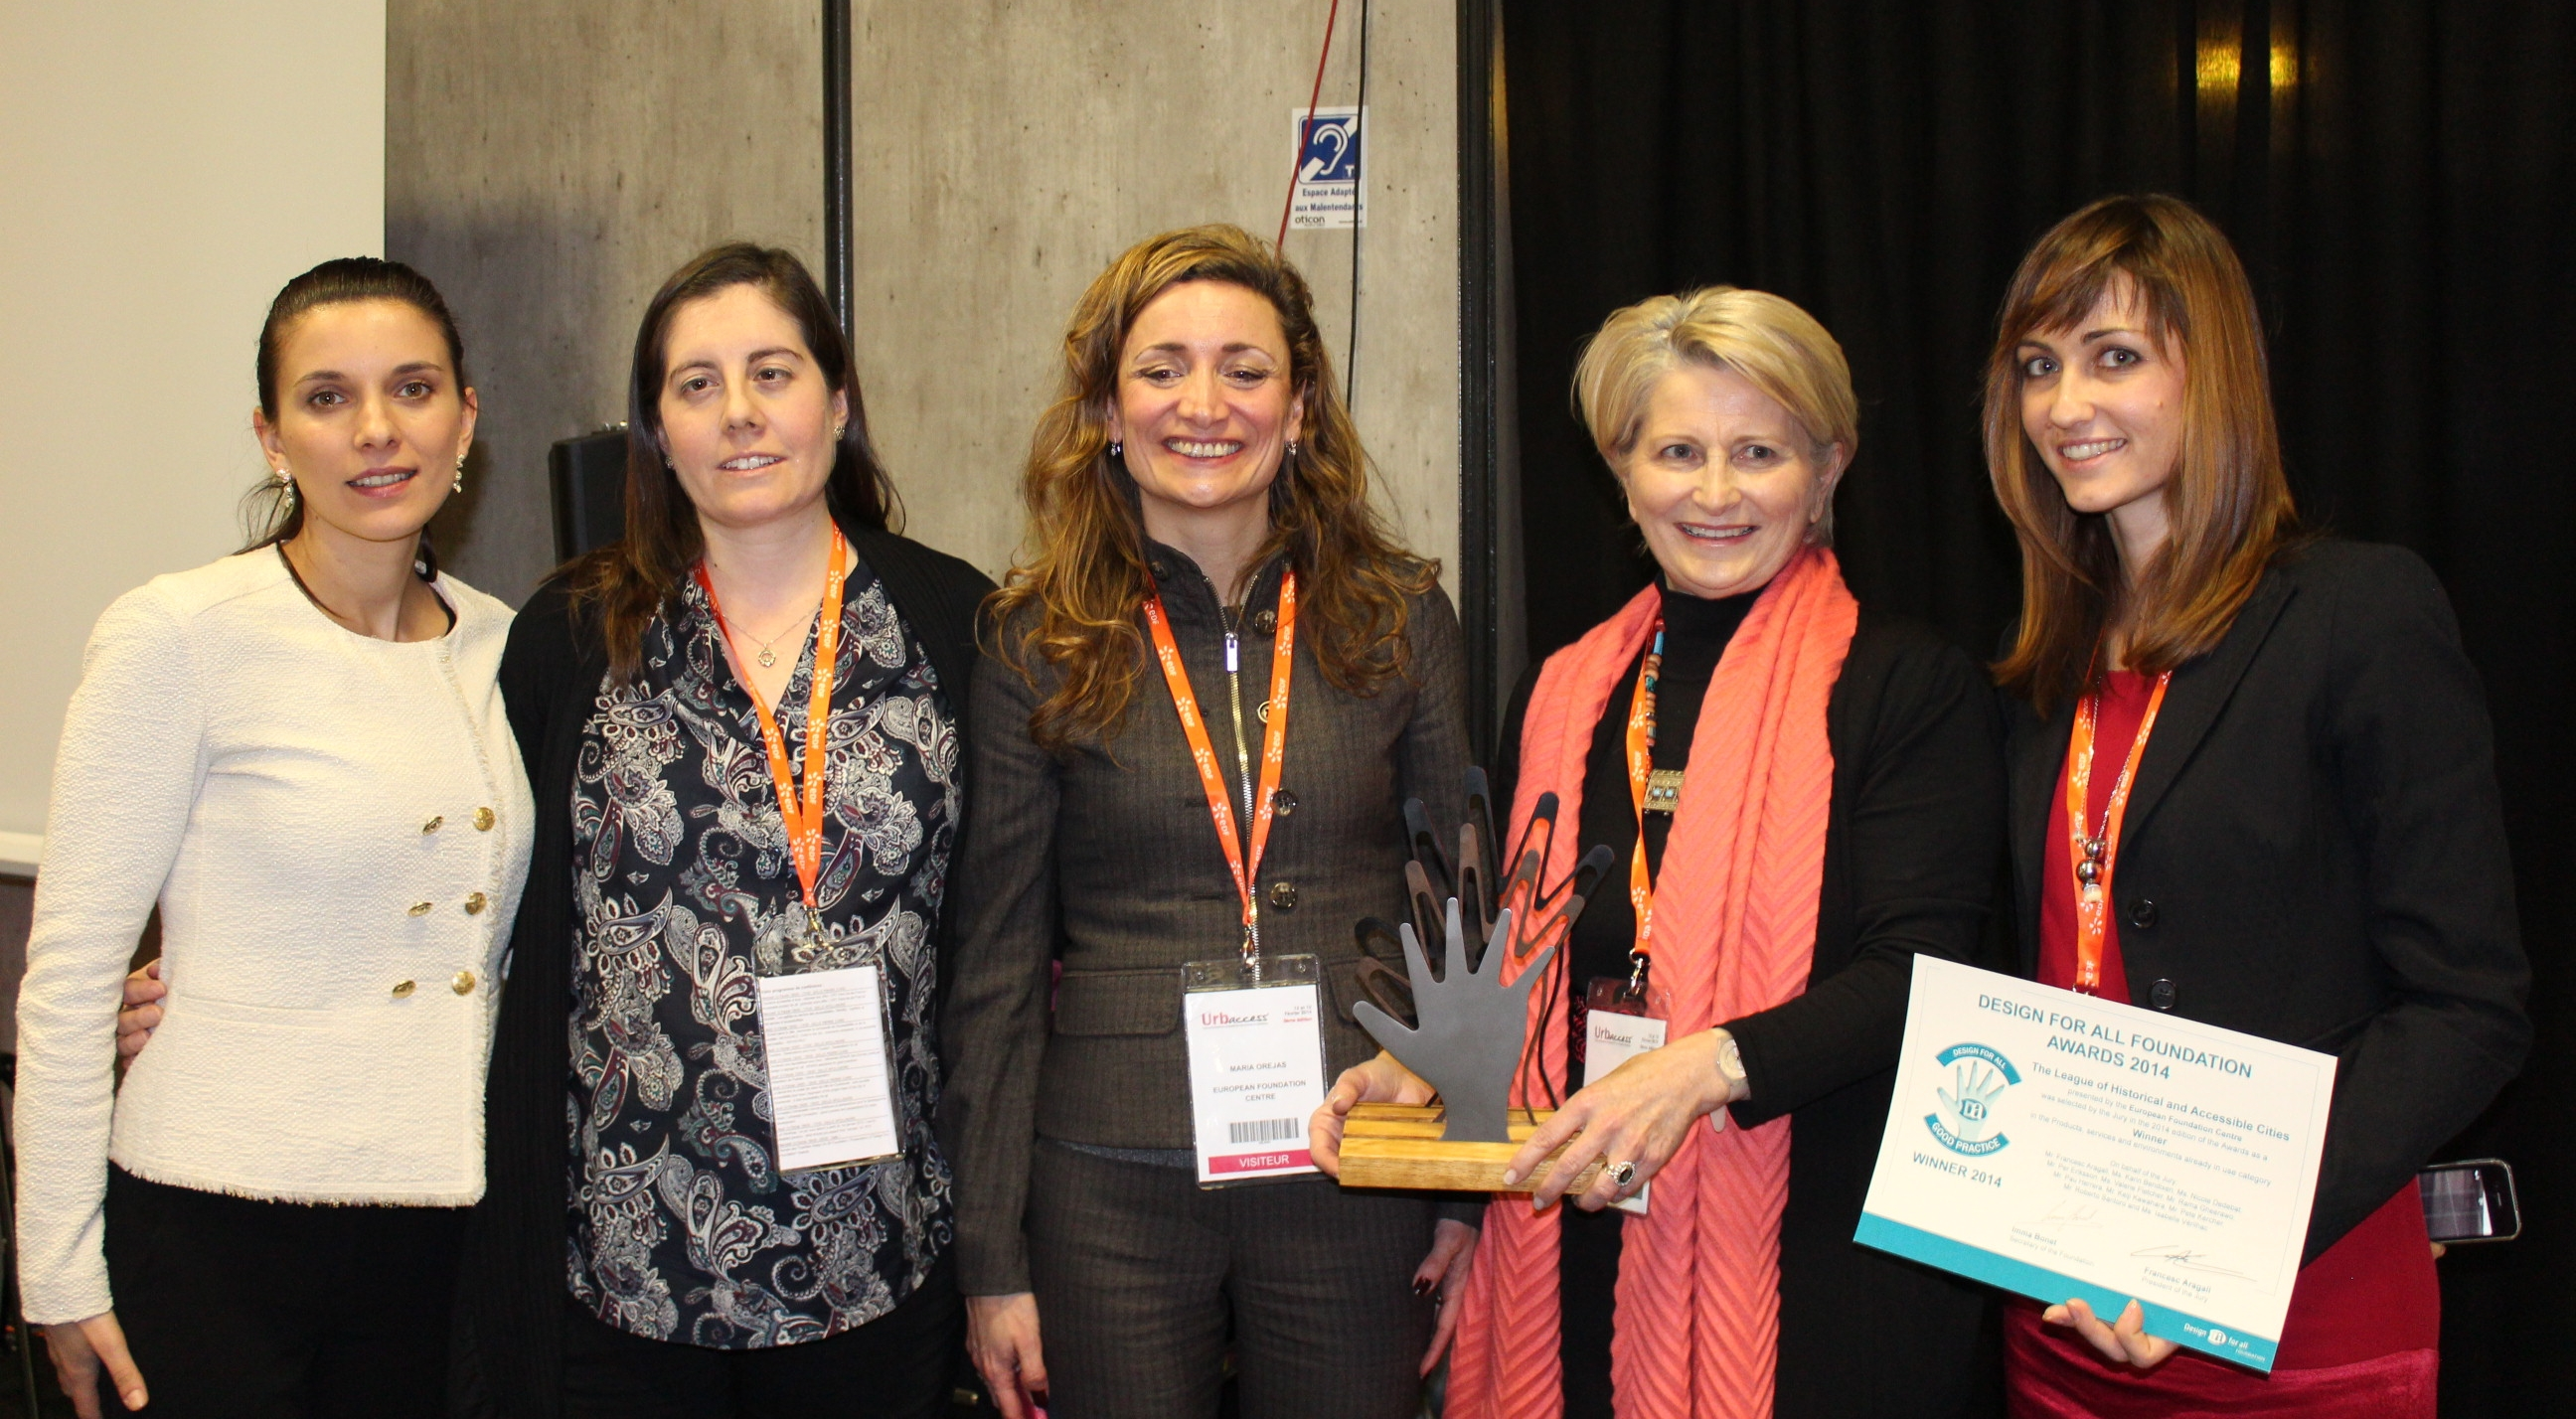 From left to right: Ms. Petya Zelenski, representative of Sozopol Foundation, Ms. Alicia Barragan Iturriaga, Director of project Via Libre (Spain), Ms. Maria Orejas-Chantelot, Thematic Networks Director at the European Foundation Centre (Belguim), Ms. Eliane Hervé-Bazin, Chief Executive, Fondation Réunica (France) and Ms. Silvia Balmas, Coordinator of the League of Historical and Accessible Cities